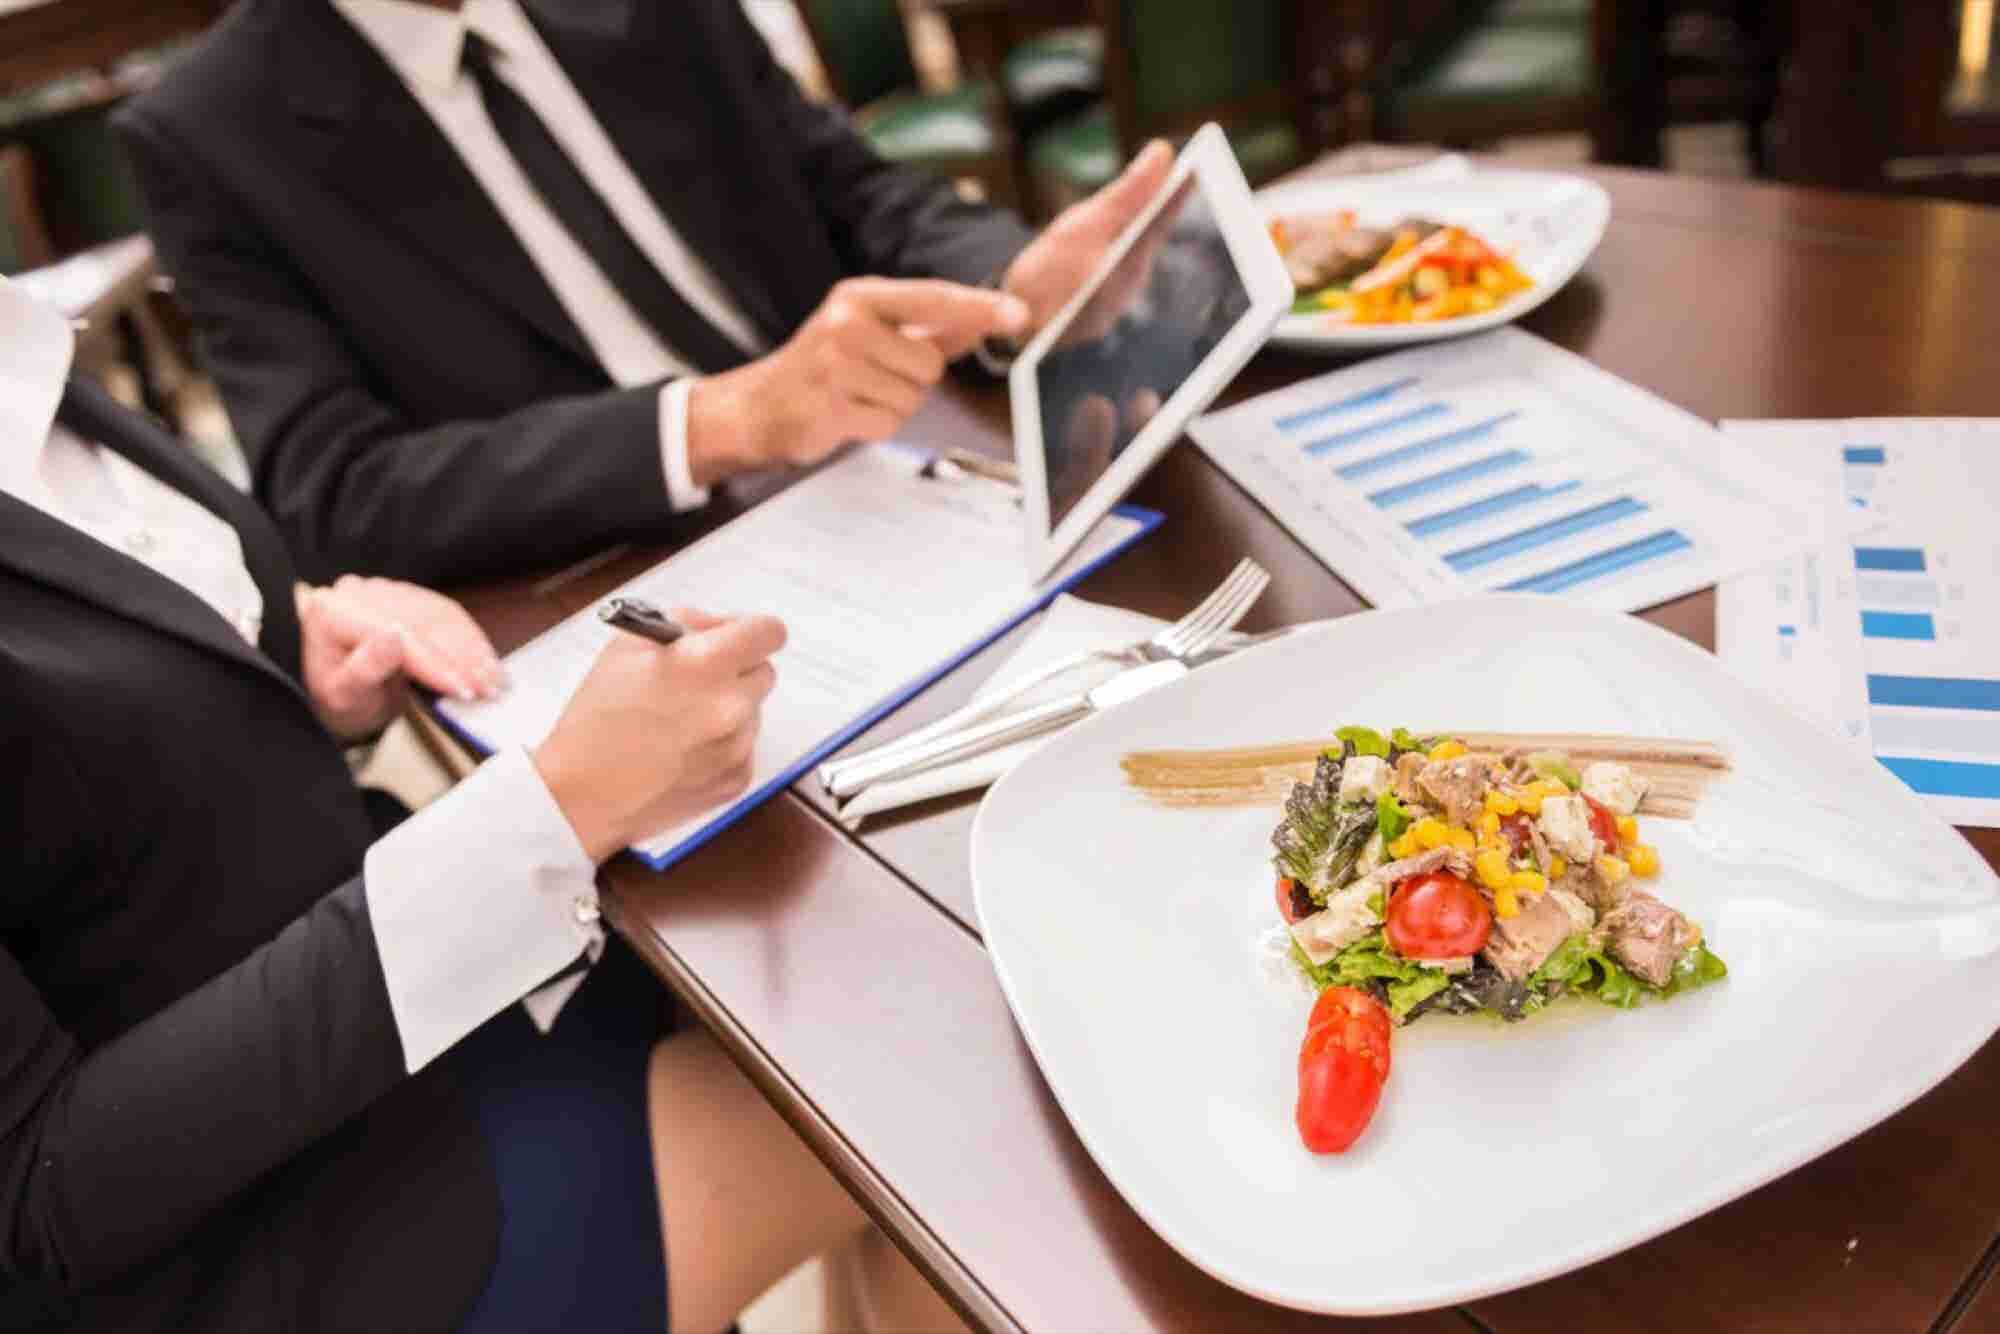 3 Dimensions of Franchise Business All Should be Aware of